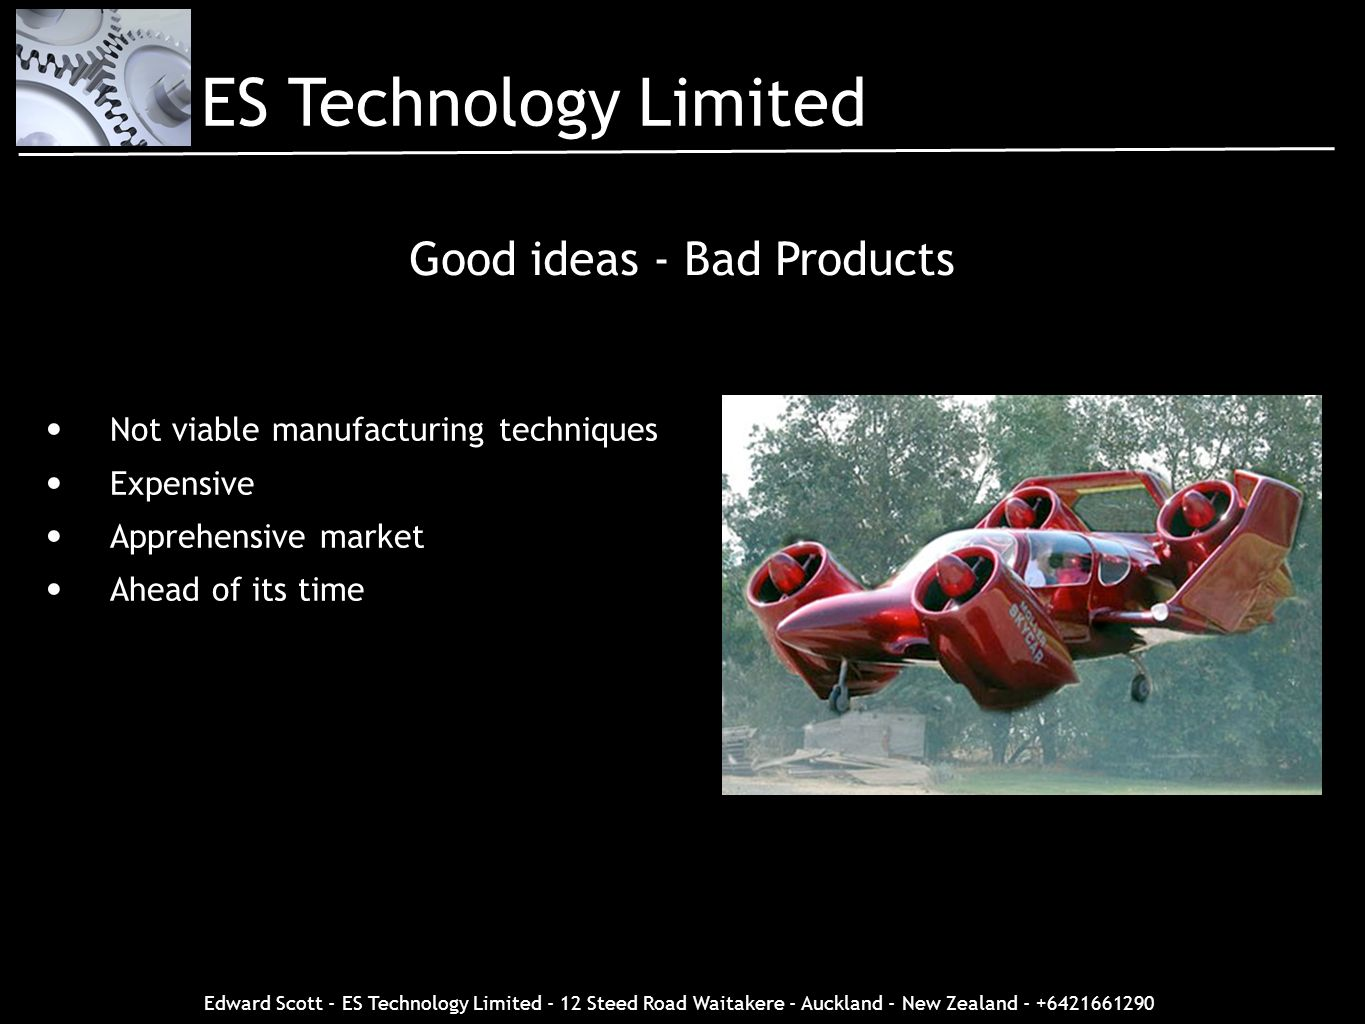 Edward Scott - ES Technology Limited - 12 Steed Road Waitakere - Auckland - New Zealand - +6421661290 Good ideas - Bad Products Not viable manufacturi